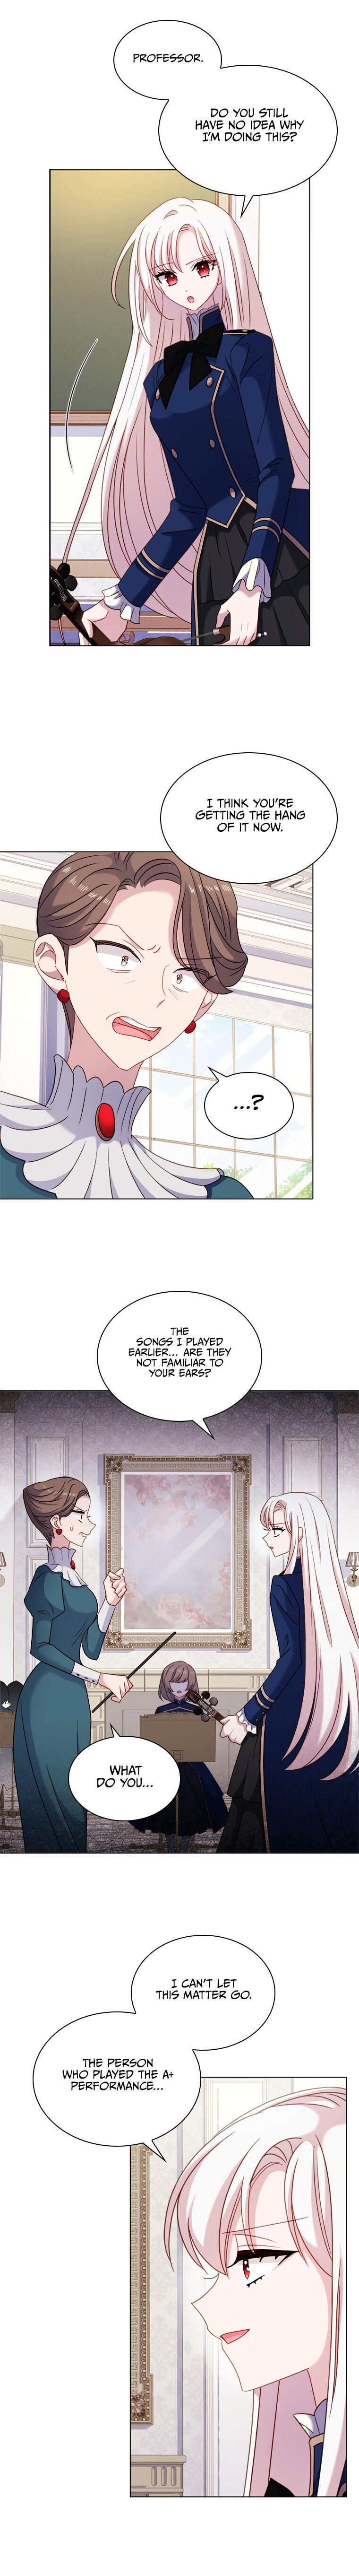 The Lady Wants To Rest (Promo) Chapter 39 page 10 - Mangakakalots.com